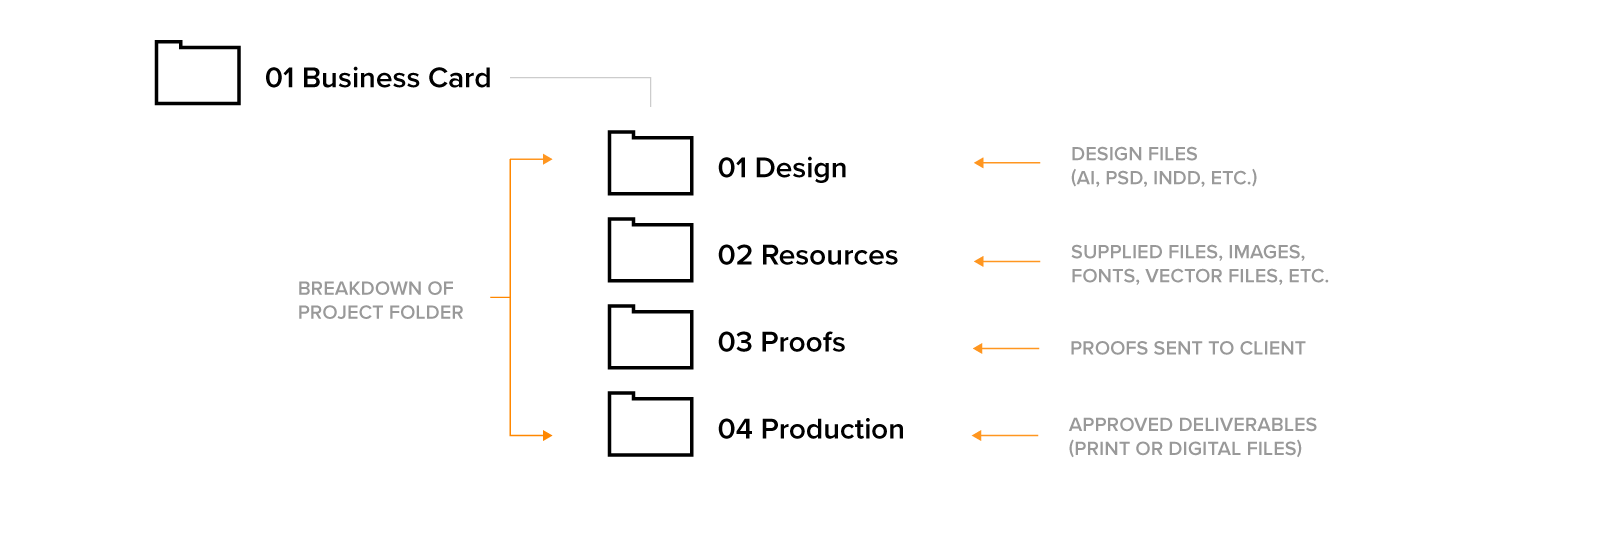 Example of the file folders within the project folders